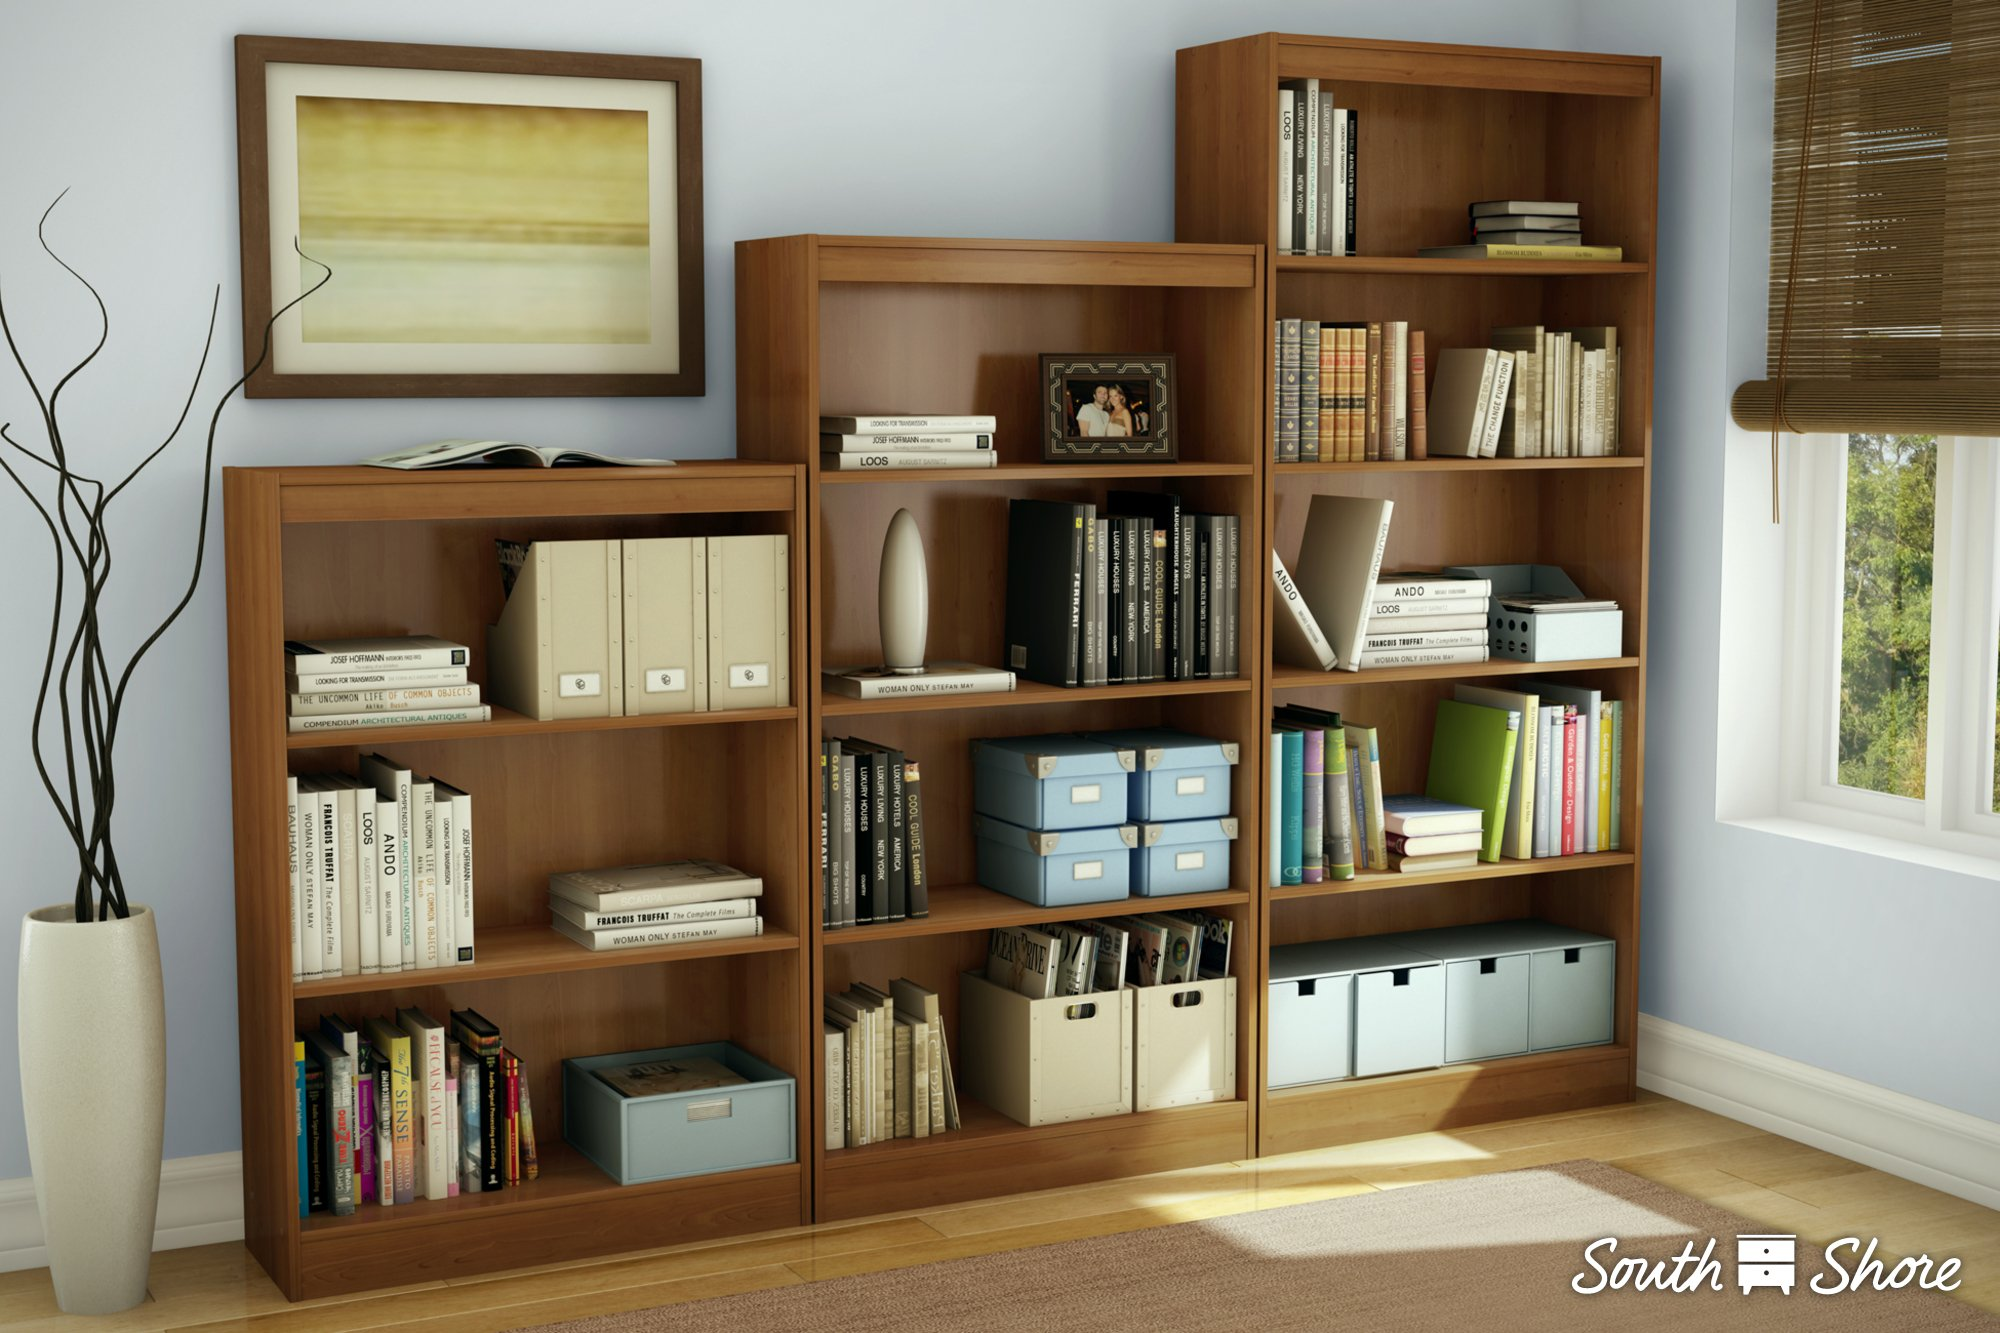 South Shore 4-Shelf Storage Bookcase, Natural Maple by South Shore (Image #1)